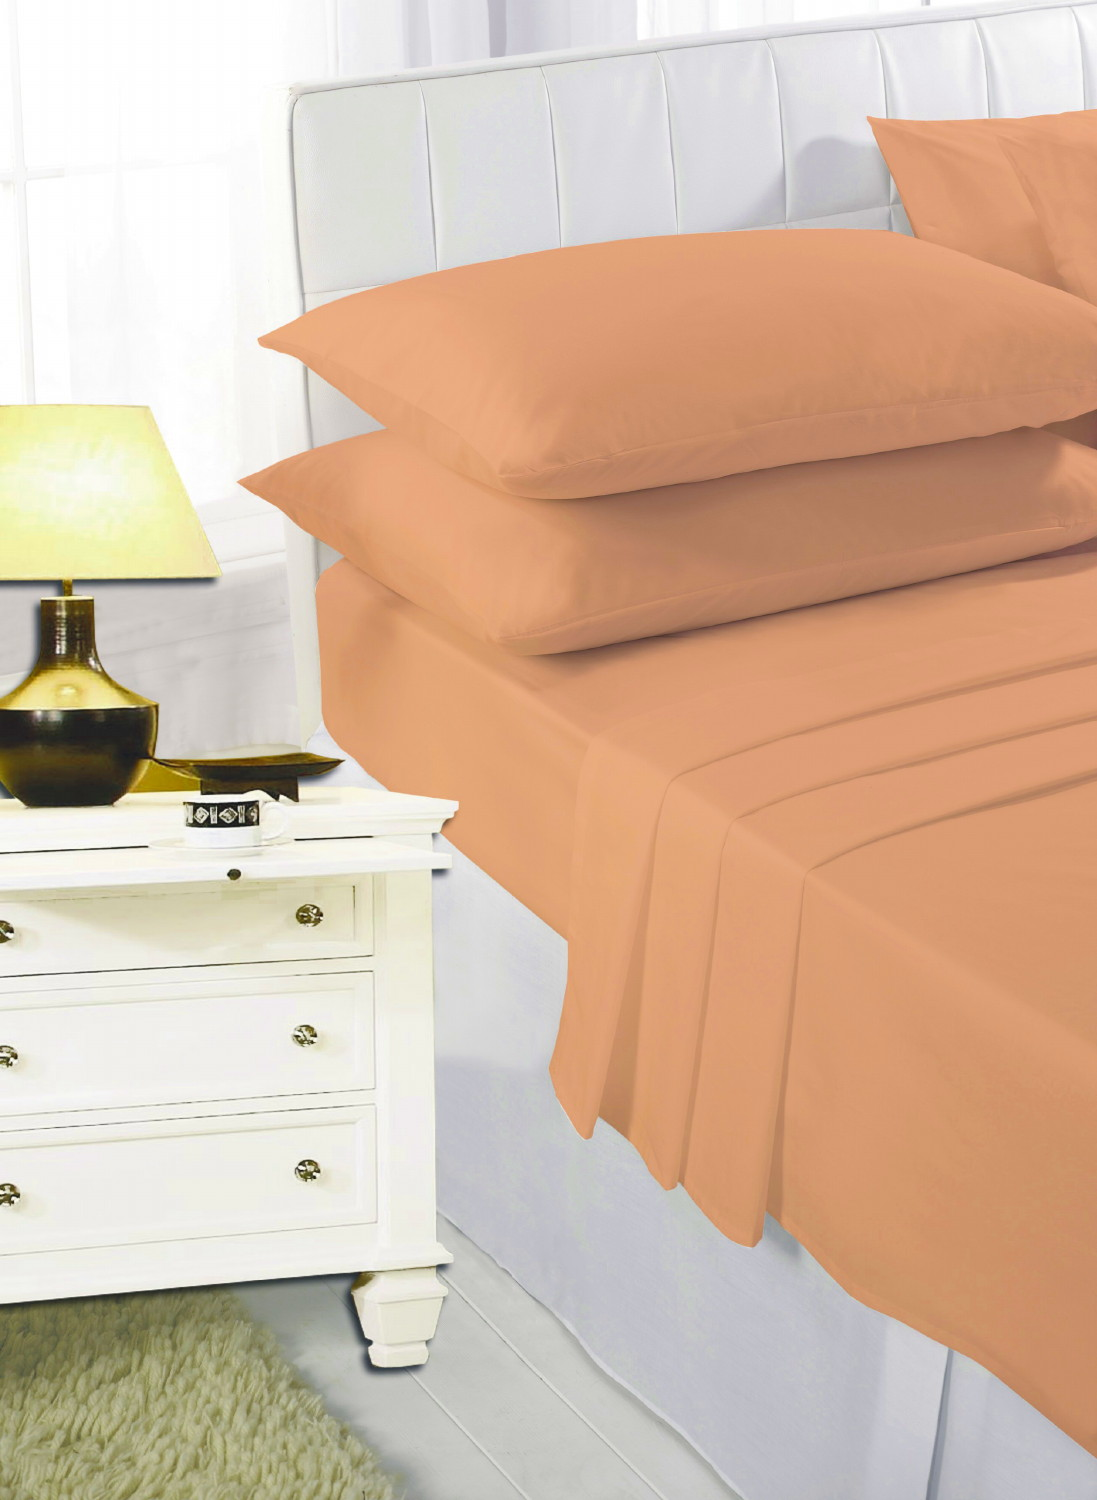 Extra Deep Fitted Sheets | Egyptian Cotton | Flannelette | Poly Cotton | Double Brushed Microfibre (Soft as Egyptian Cotton at a Fraction of the Cost | All Bed Sizes including hard to find sizes such as Electric Bed, Bunk Bed, Small Double and 7FT Emperor Size.